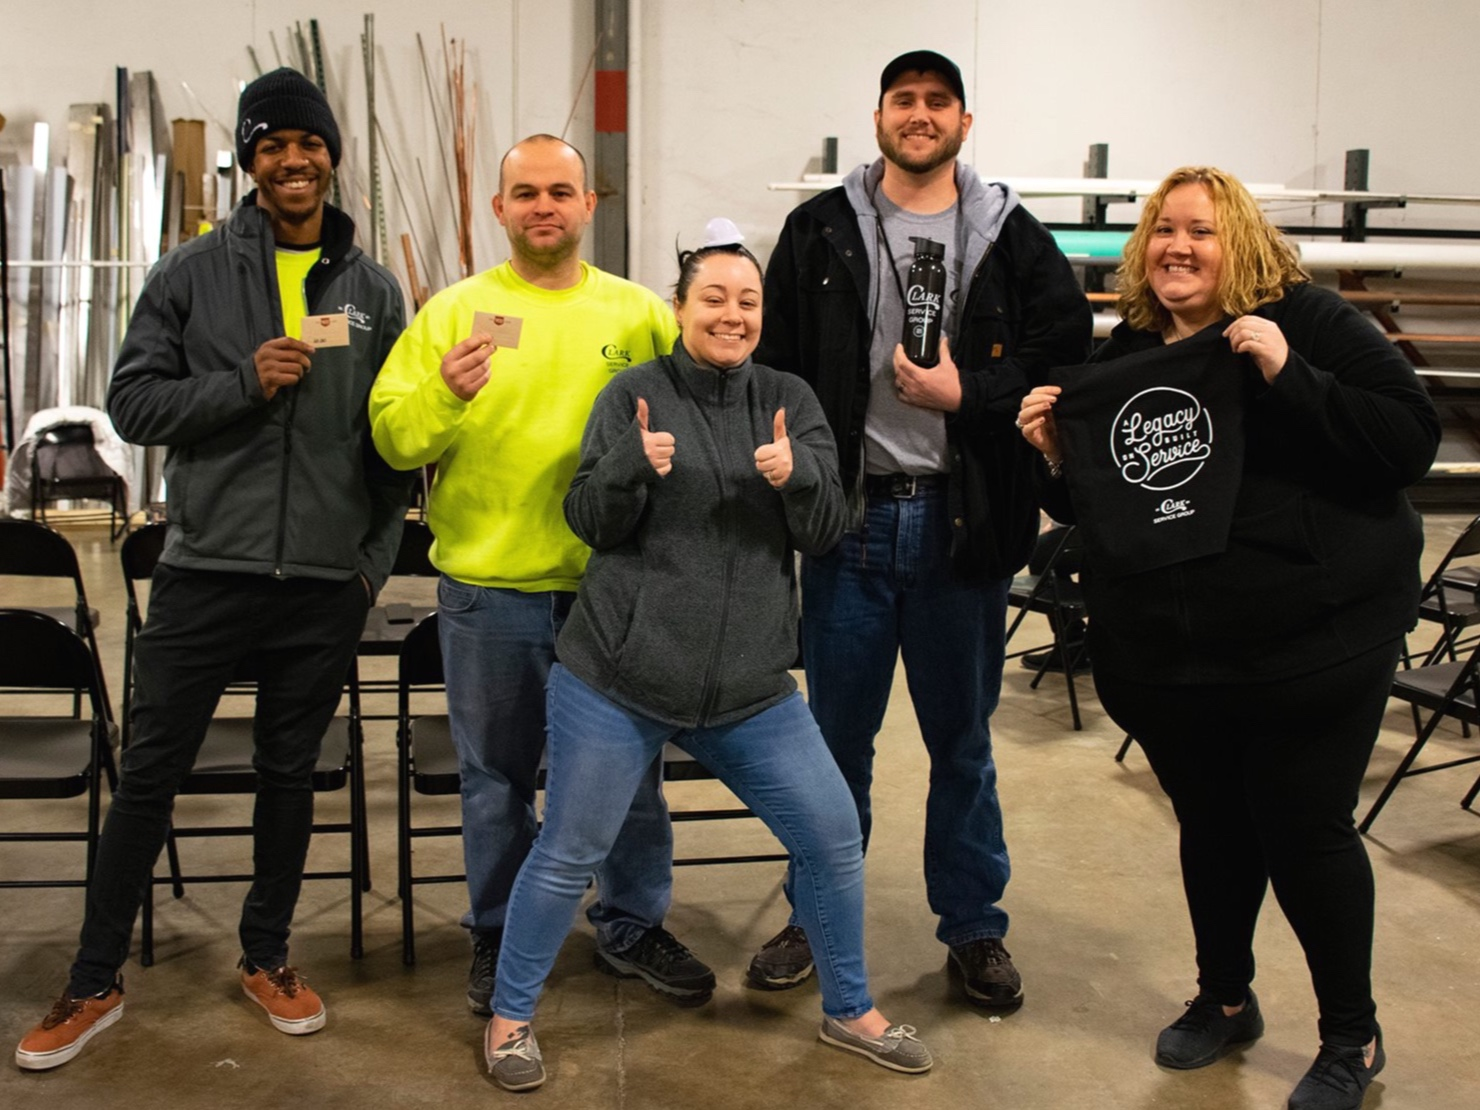 Clark Service Group employees smiling and giving thumbs up, holding branded SWAG.